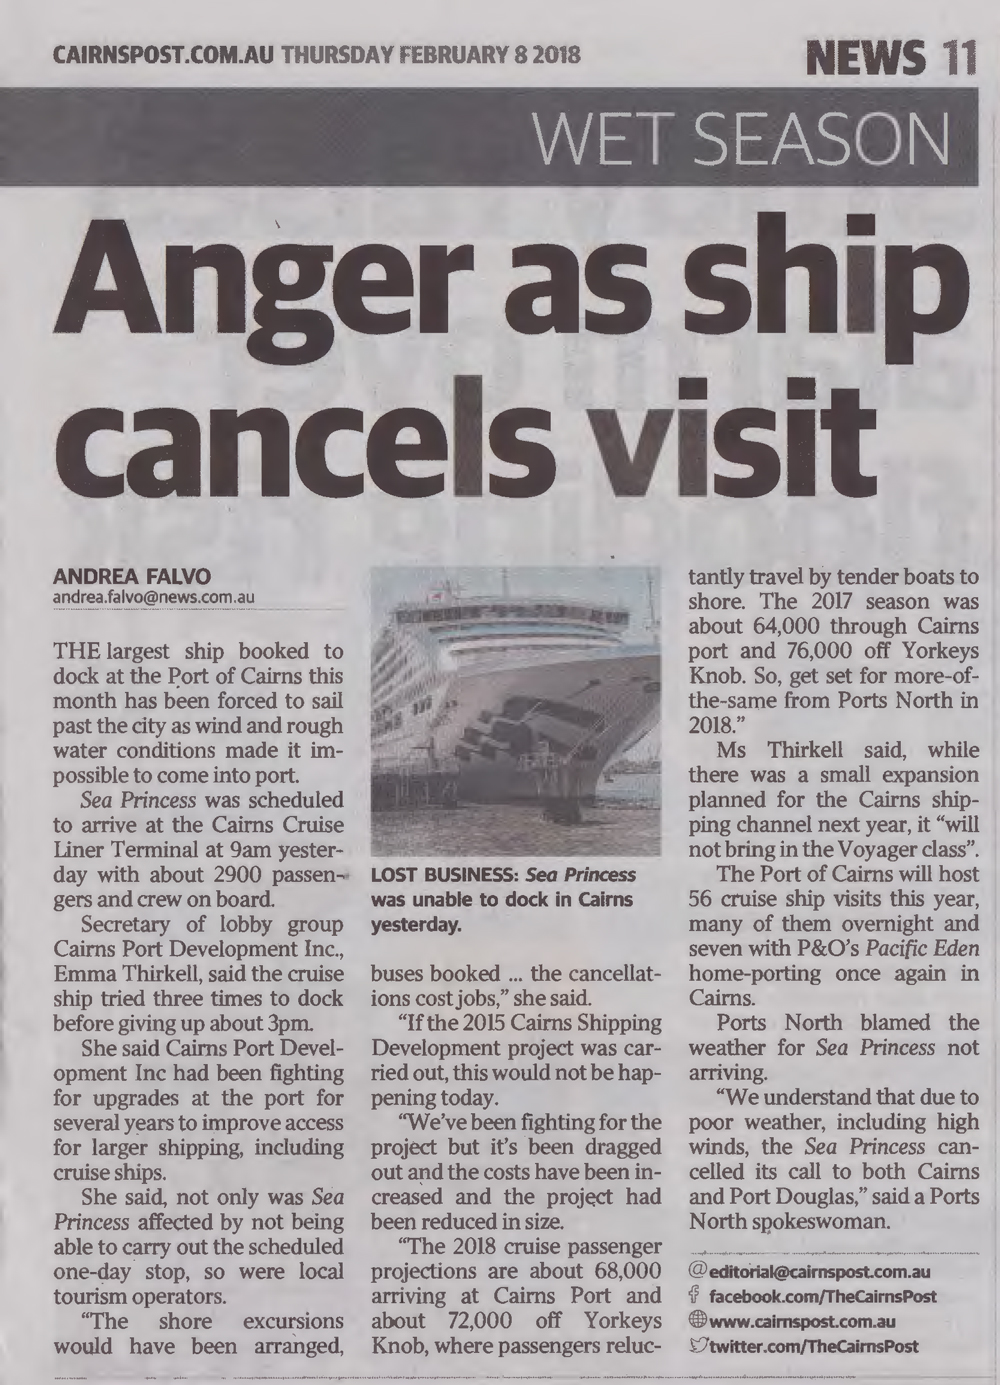 Anger as ship cancels visit